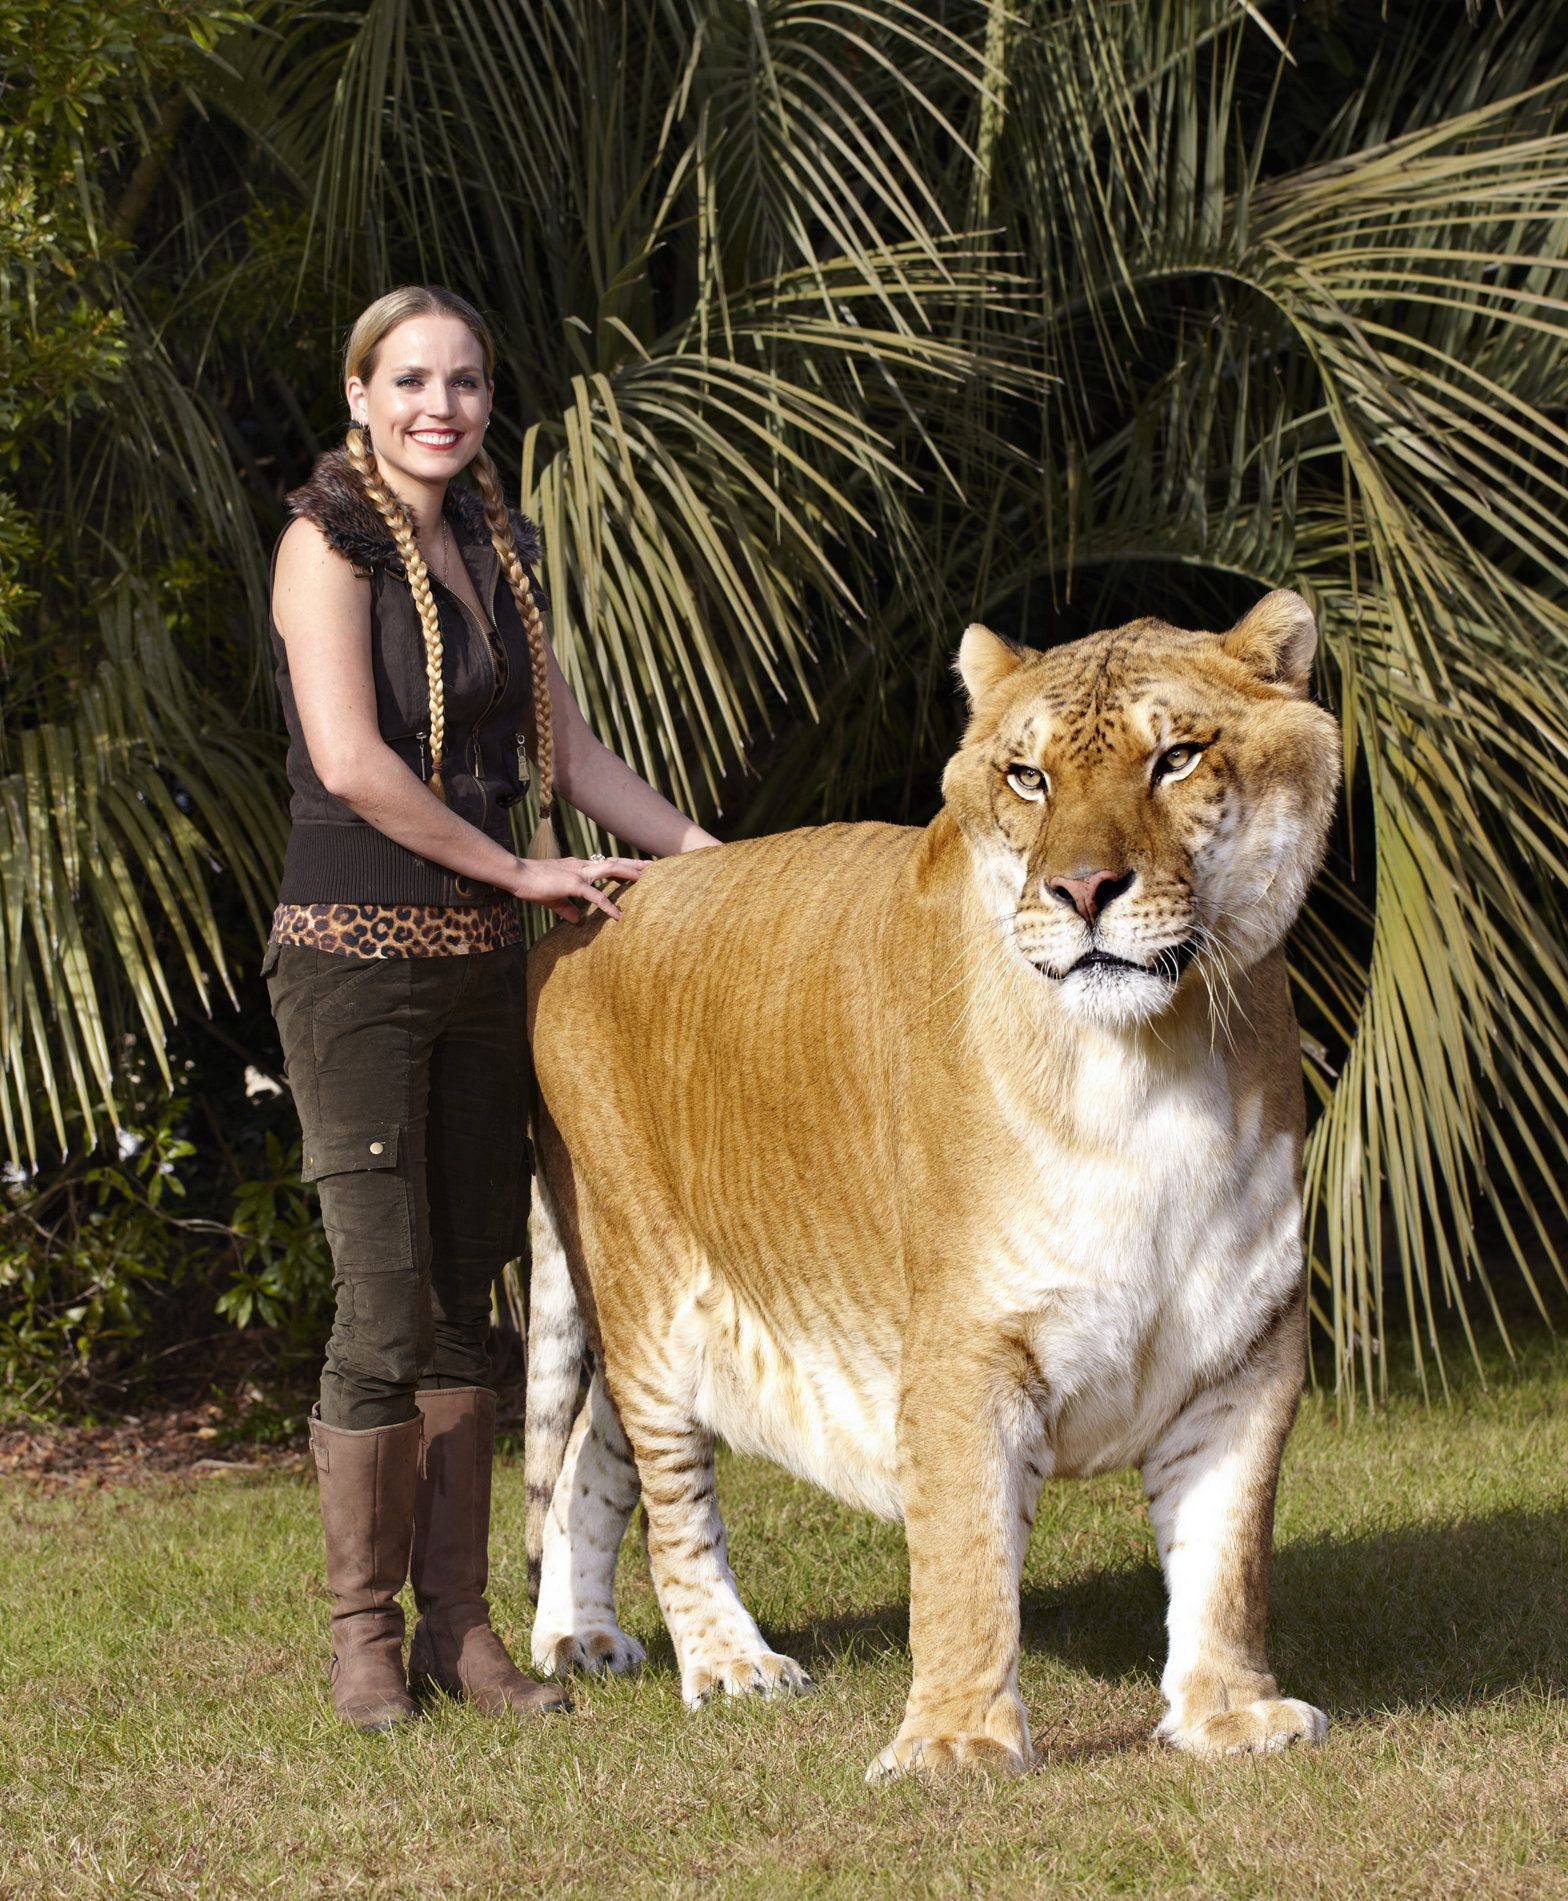 guinness world records amazing animals - Biggest Cat In The World Guinness 2015